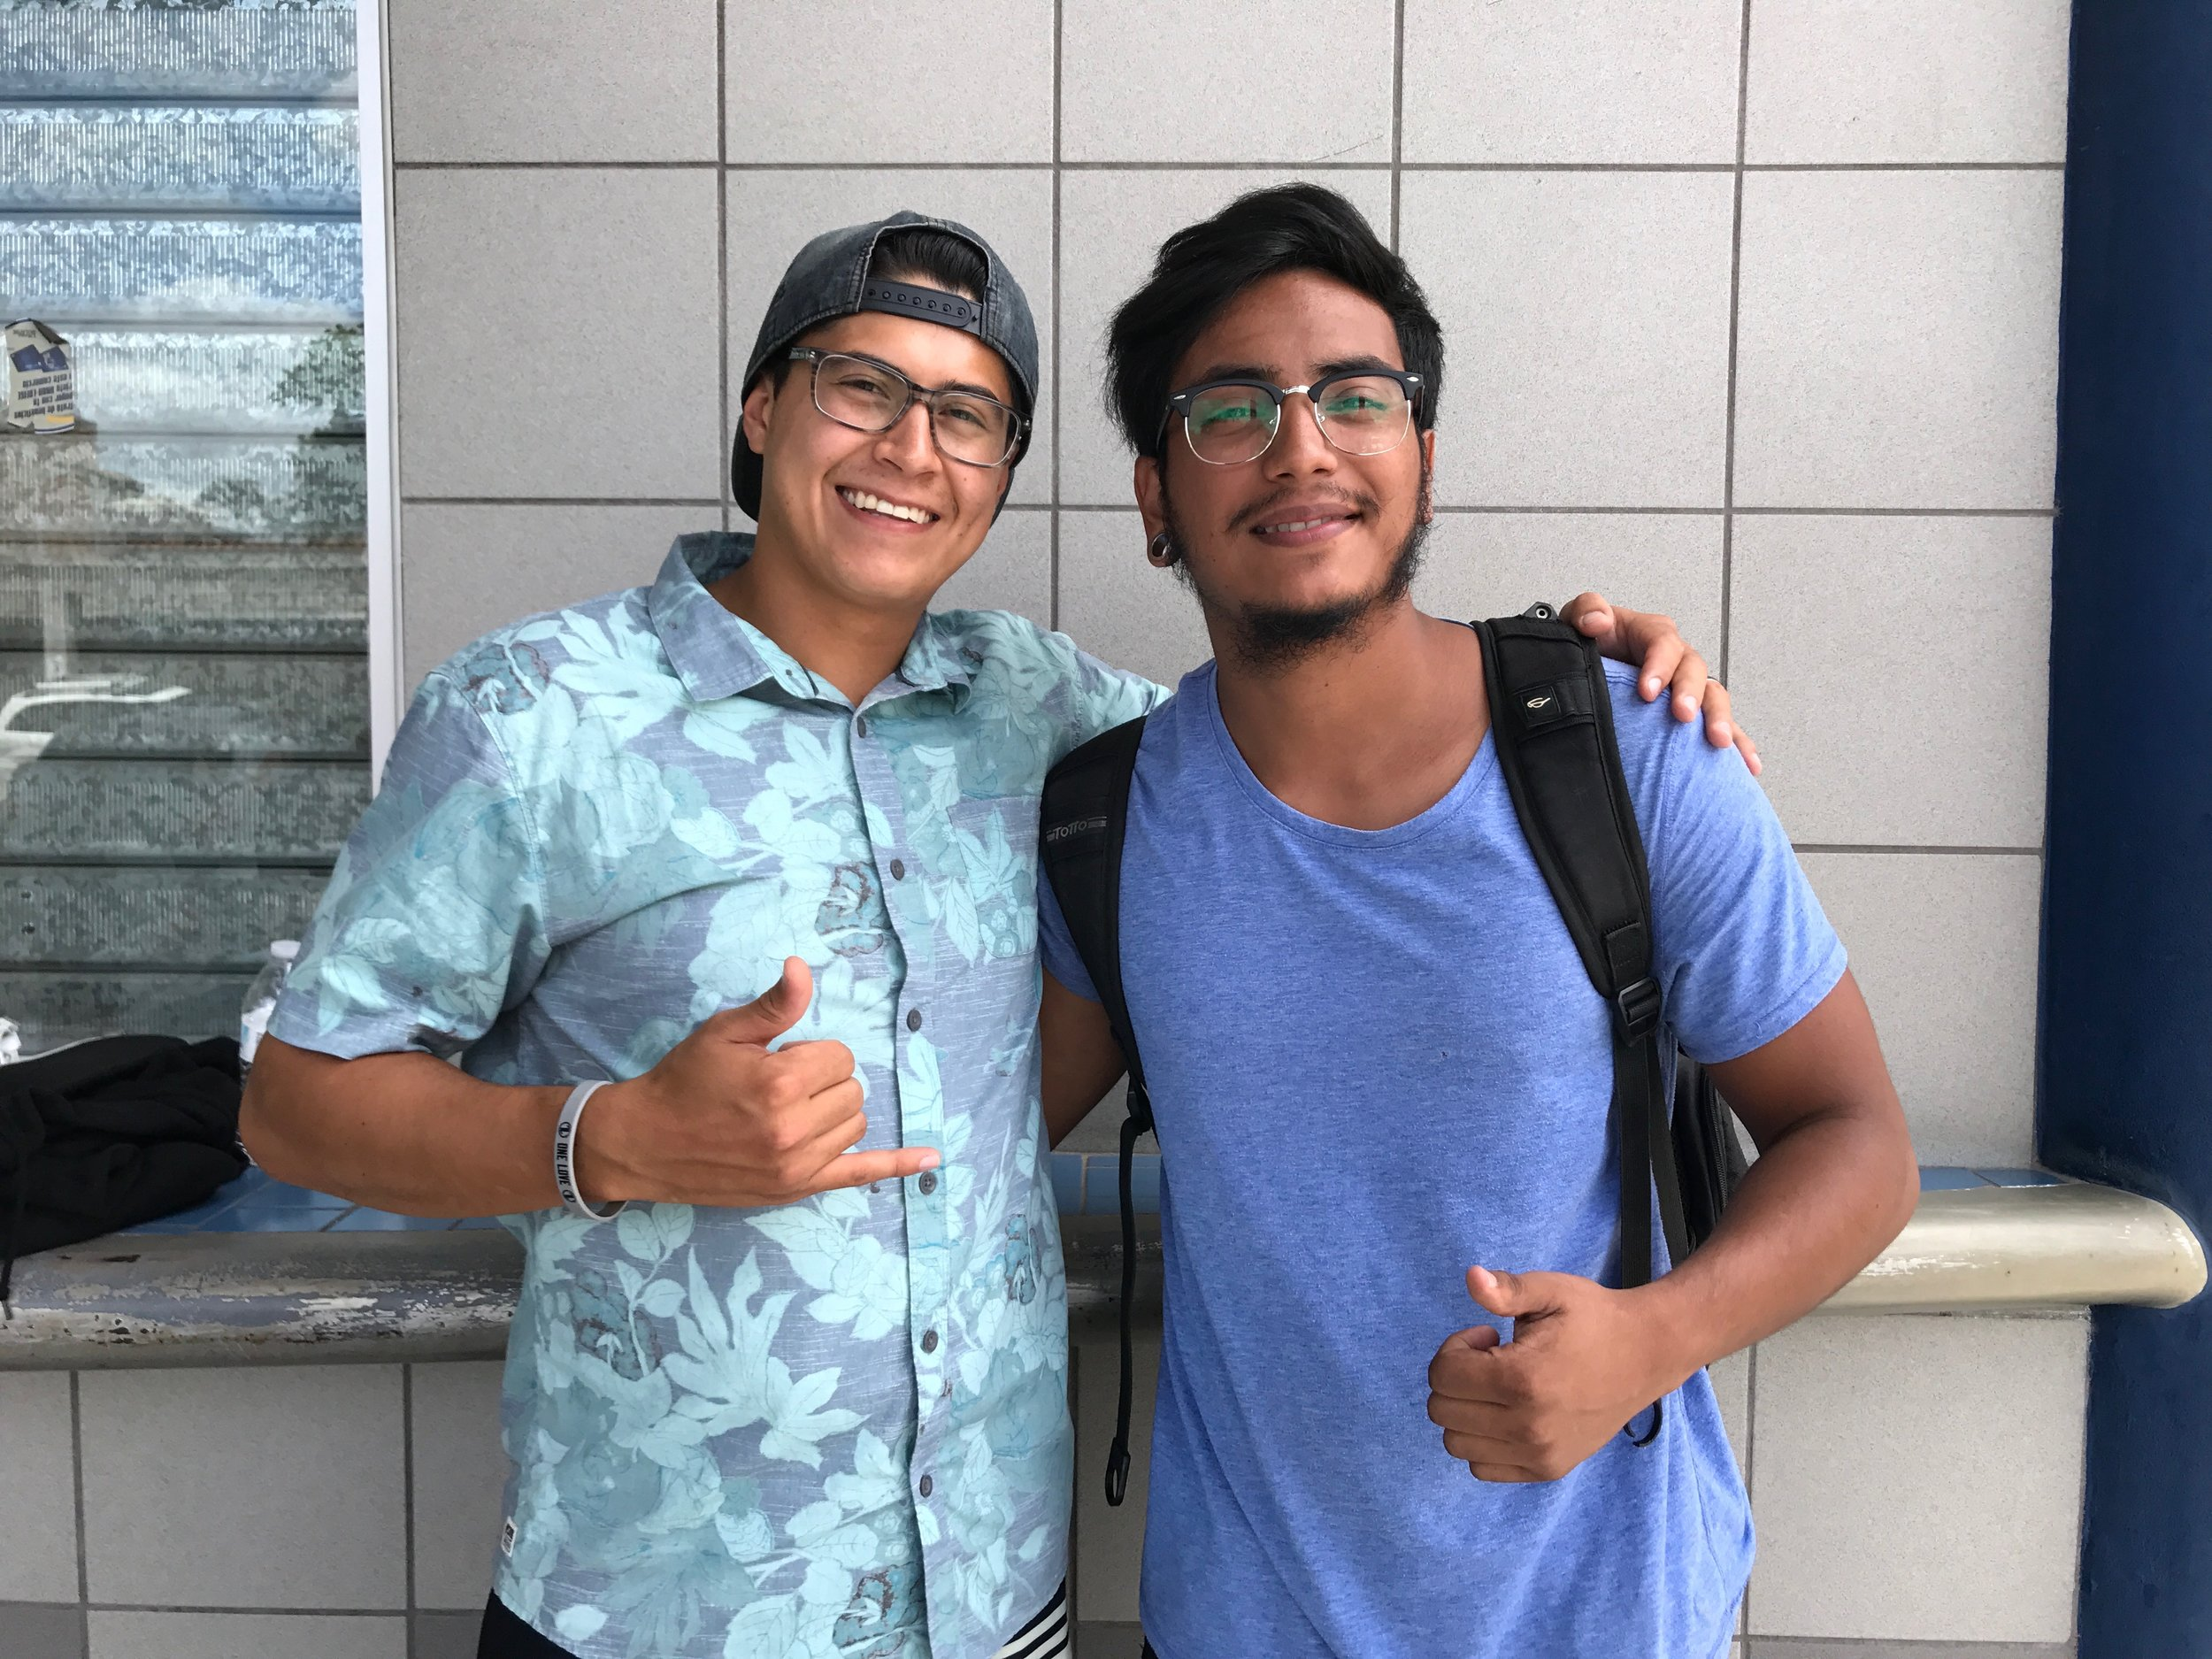 Pray for Auburn as he reps 1L in Wyoming / Colorado area and for Christian as he reps 1L in Honduras. Thanks for helping us resource and equip 1L Reps to giveaway skateboards every month!